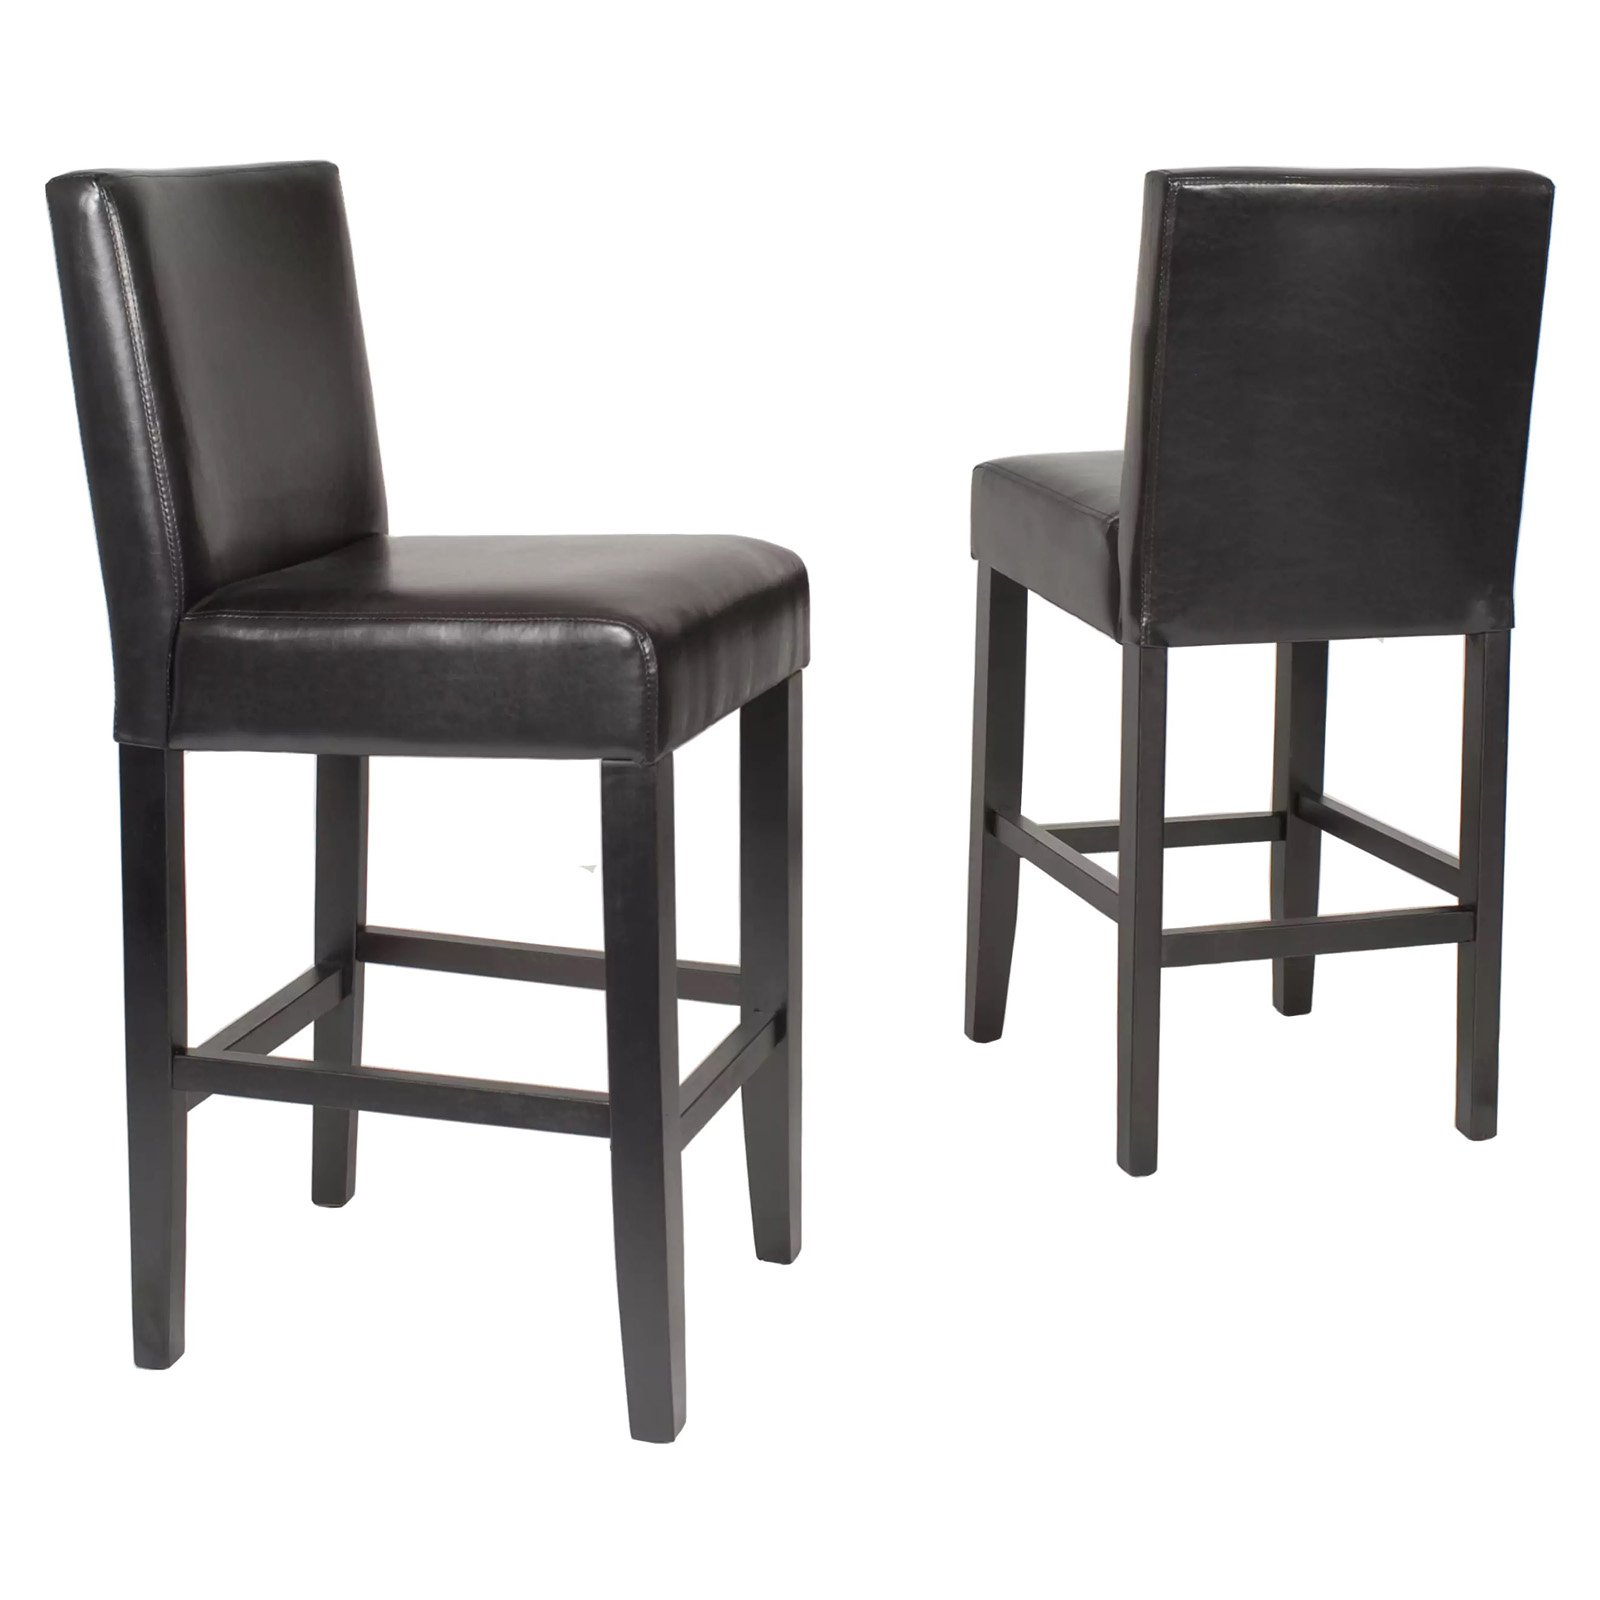 Counter Height Chairs With Arms Roundhill Citylight Counter Height Barstool Set Of 2 Multiple Colors Available